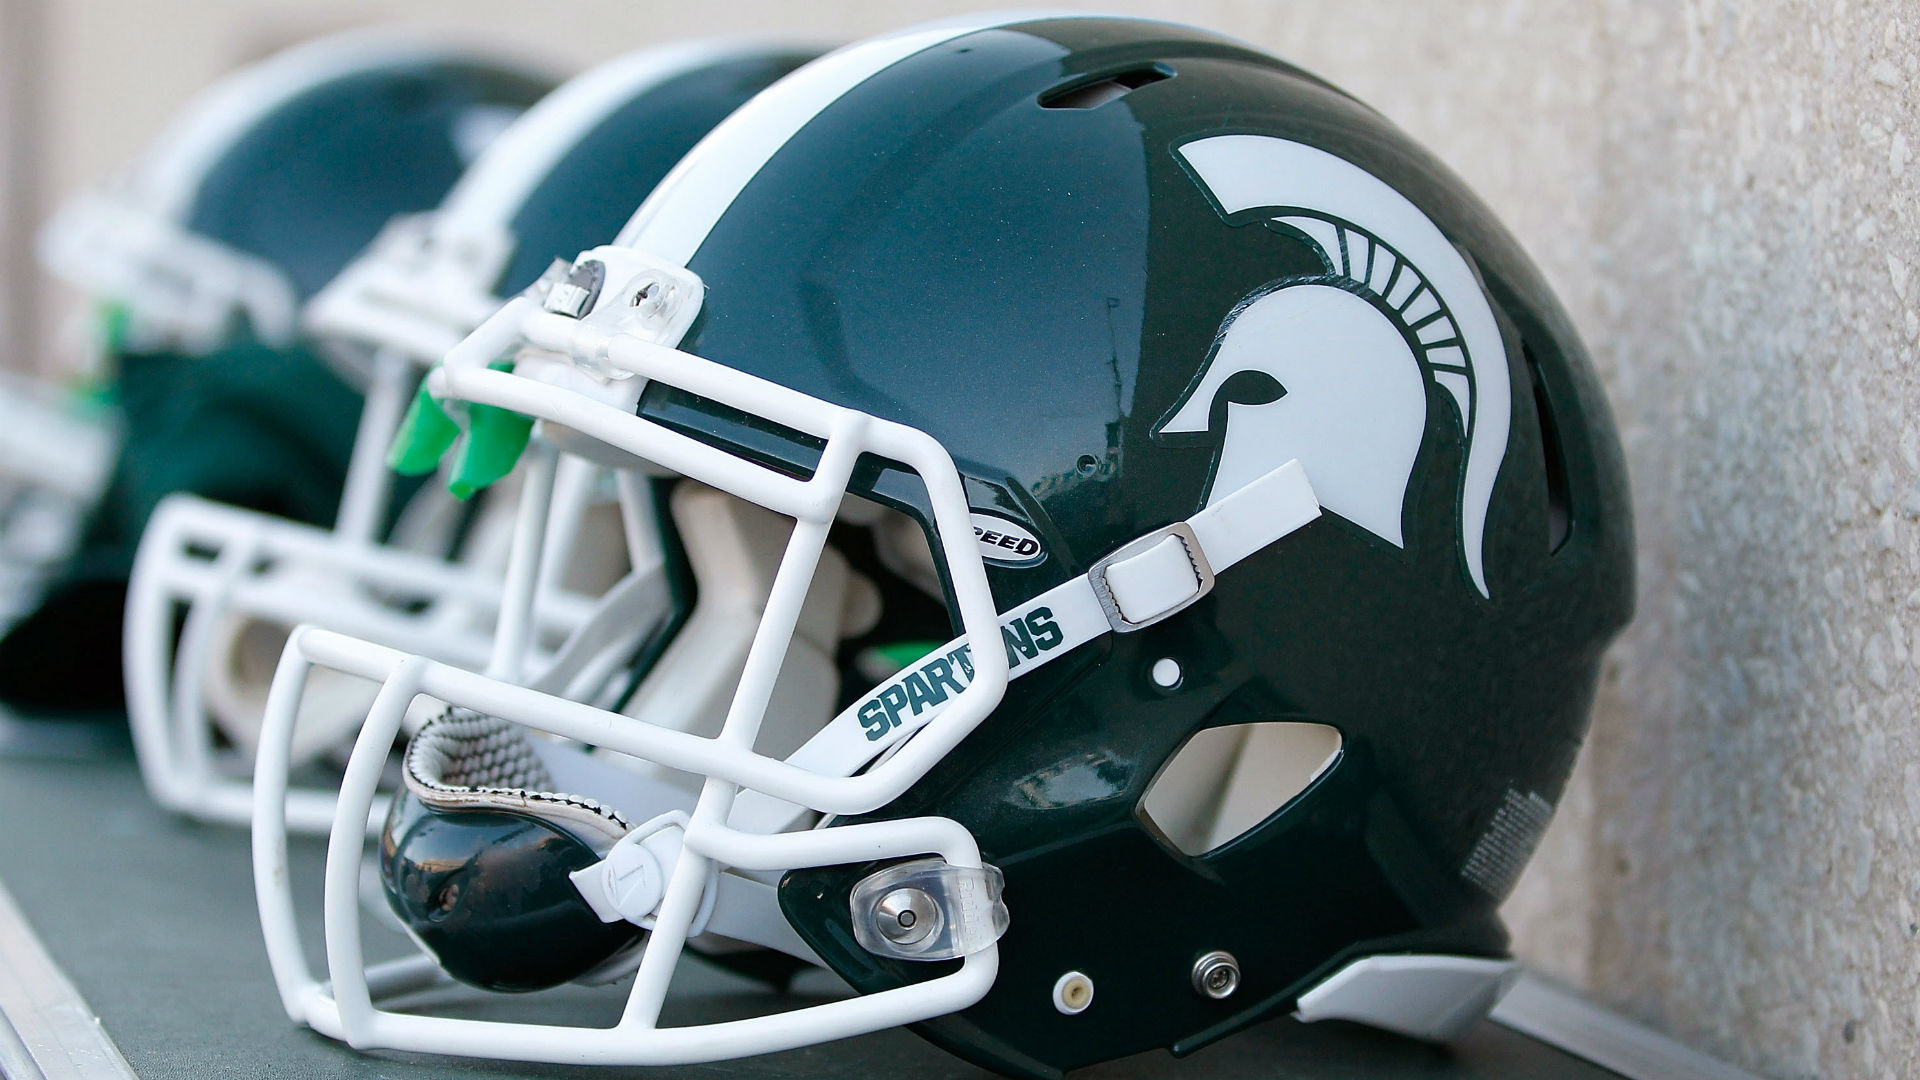 Michigan State recruit Donovan Winter couldn't sign after being arrested